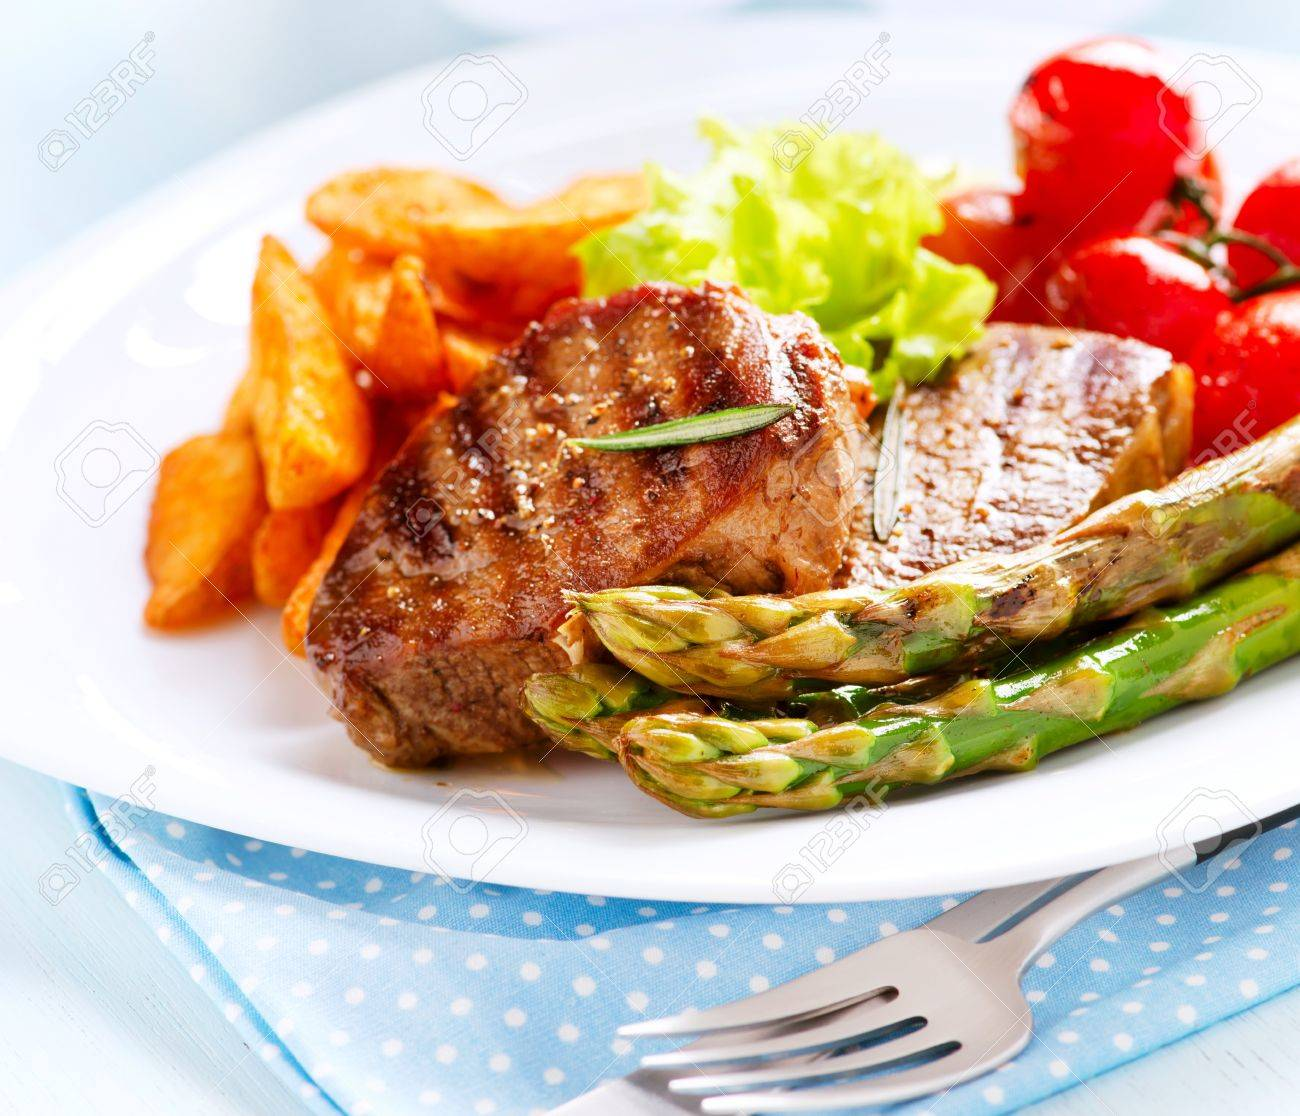 Grilled Beef Steak Meat With Fried Potato Asparagus Tomatoes Stock Photo 20793572